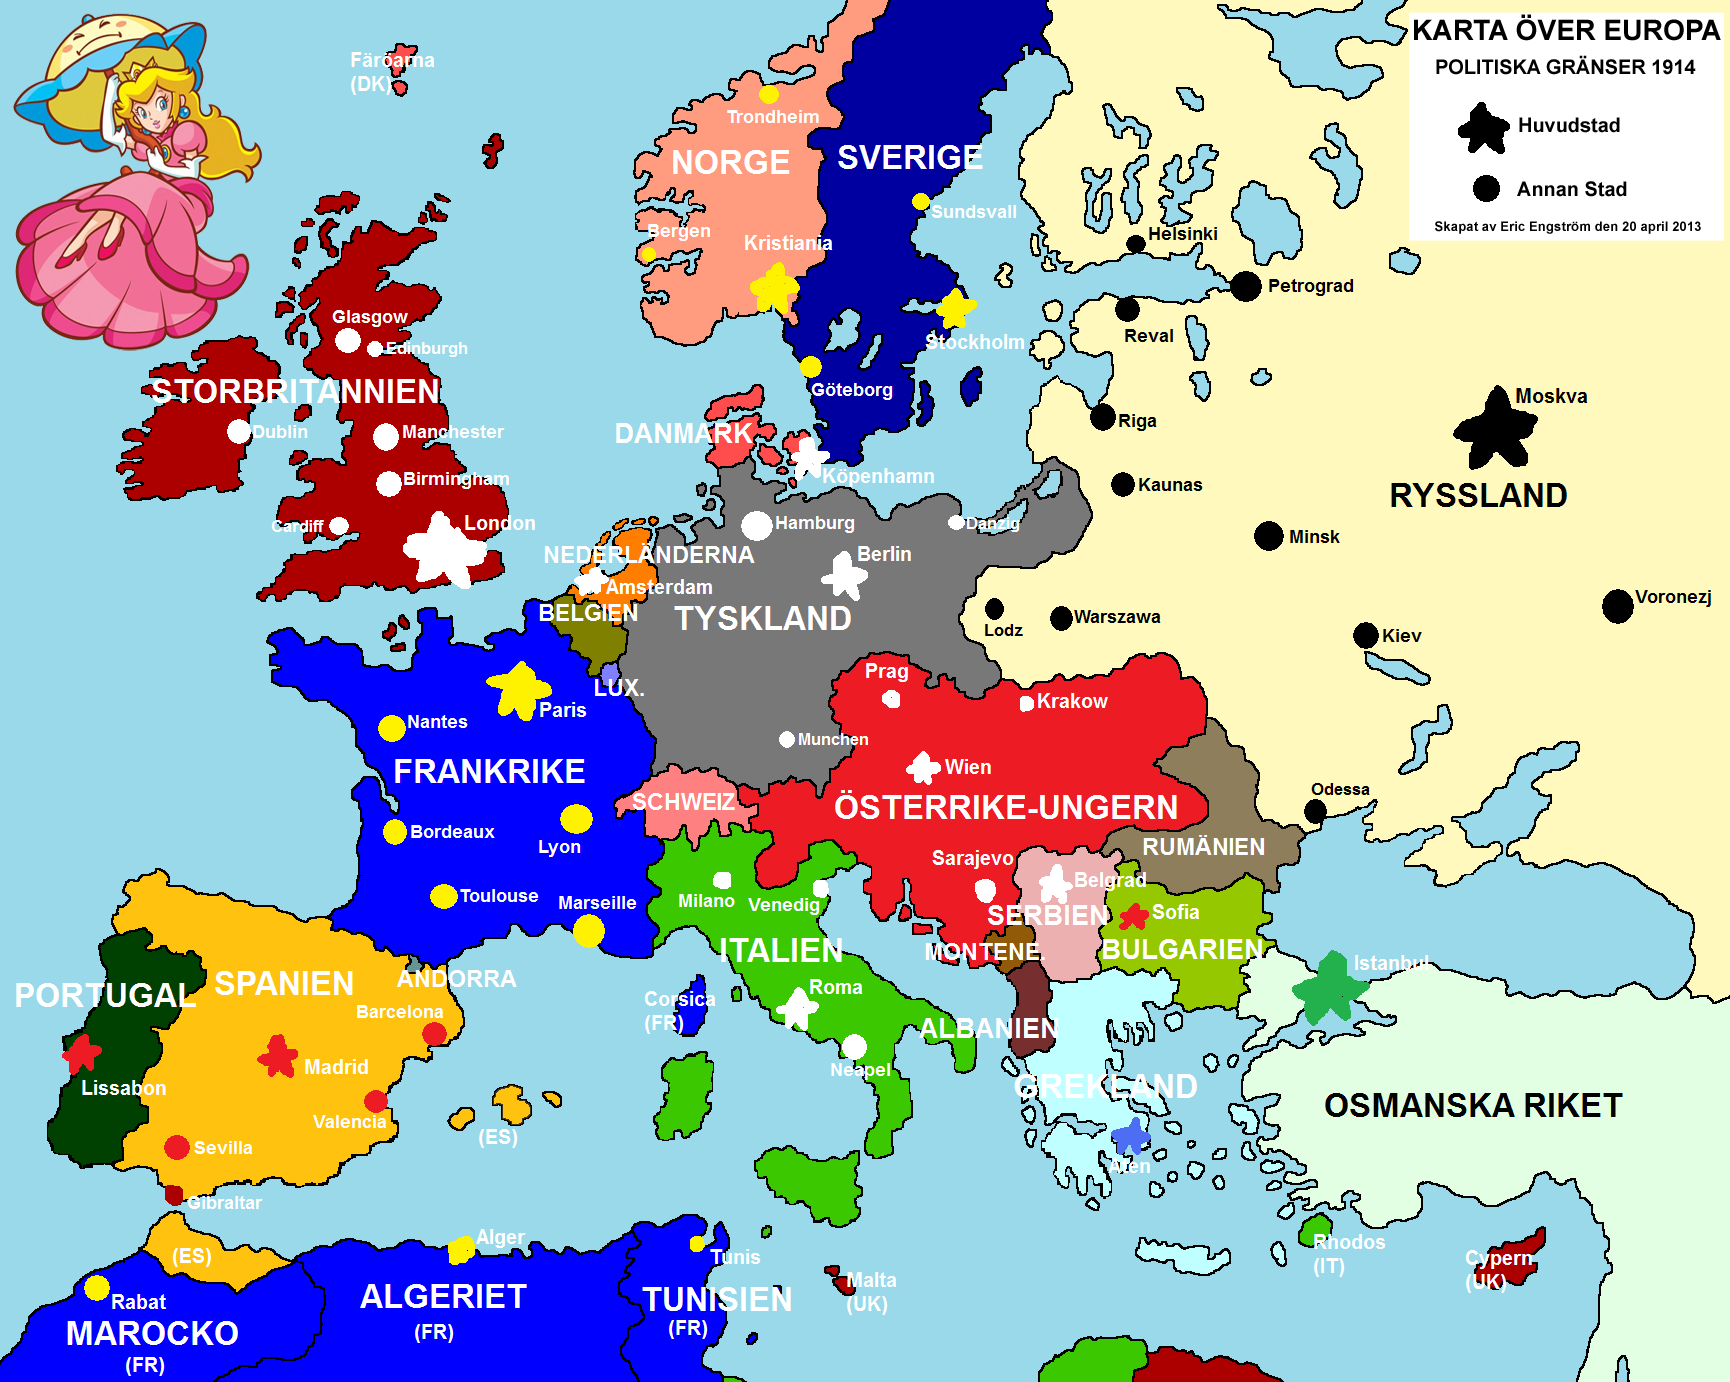 a history of europe before world war i and the importance of political movements The importance of our special  sacrificed so much for the peace we have enjoyed since world war ii  relations with other countries in europe as never before.